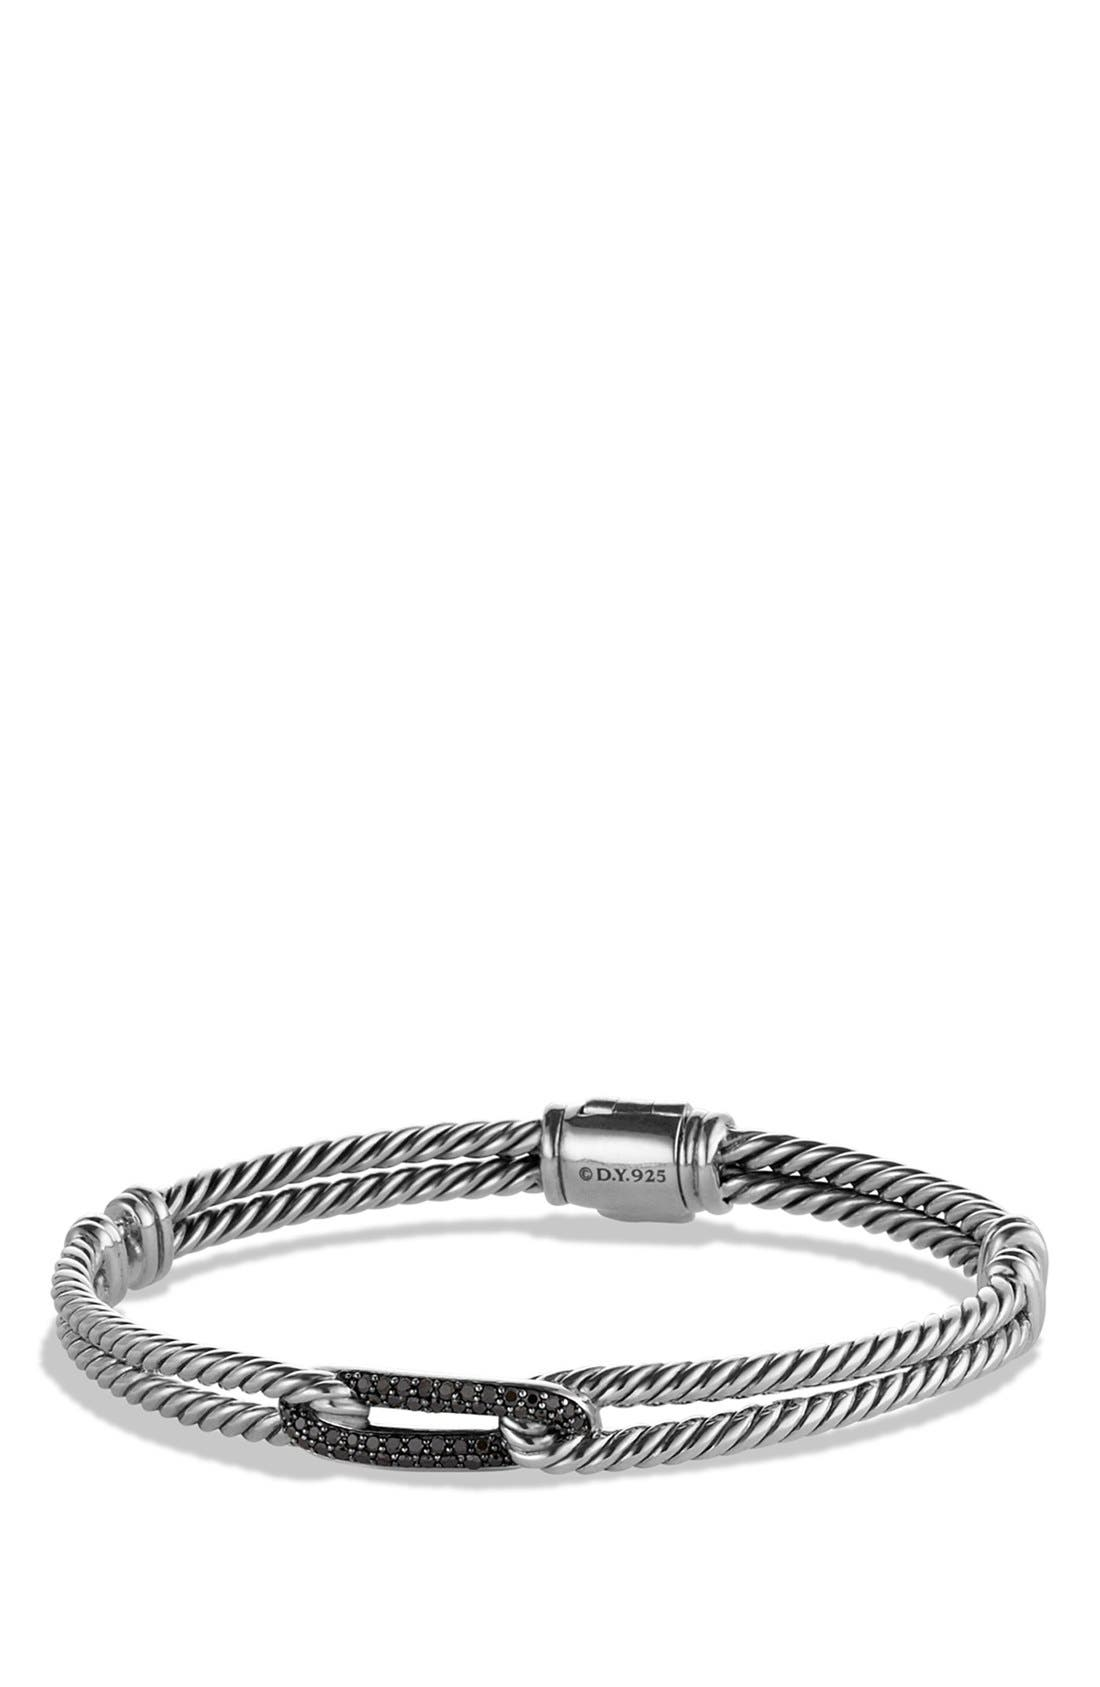 David Yurman Petite Pavé 'Labyrinth' Mini Single Loop Bracelet with Diamonds in Gold